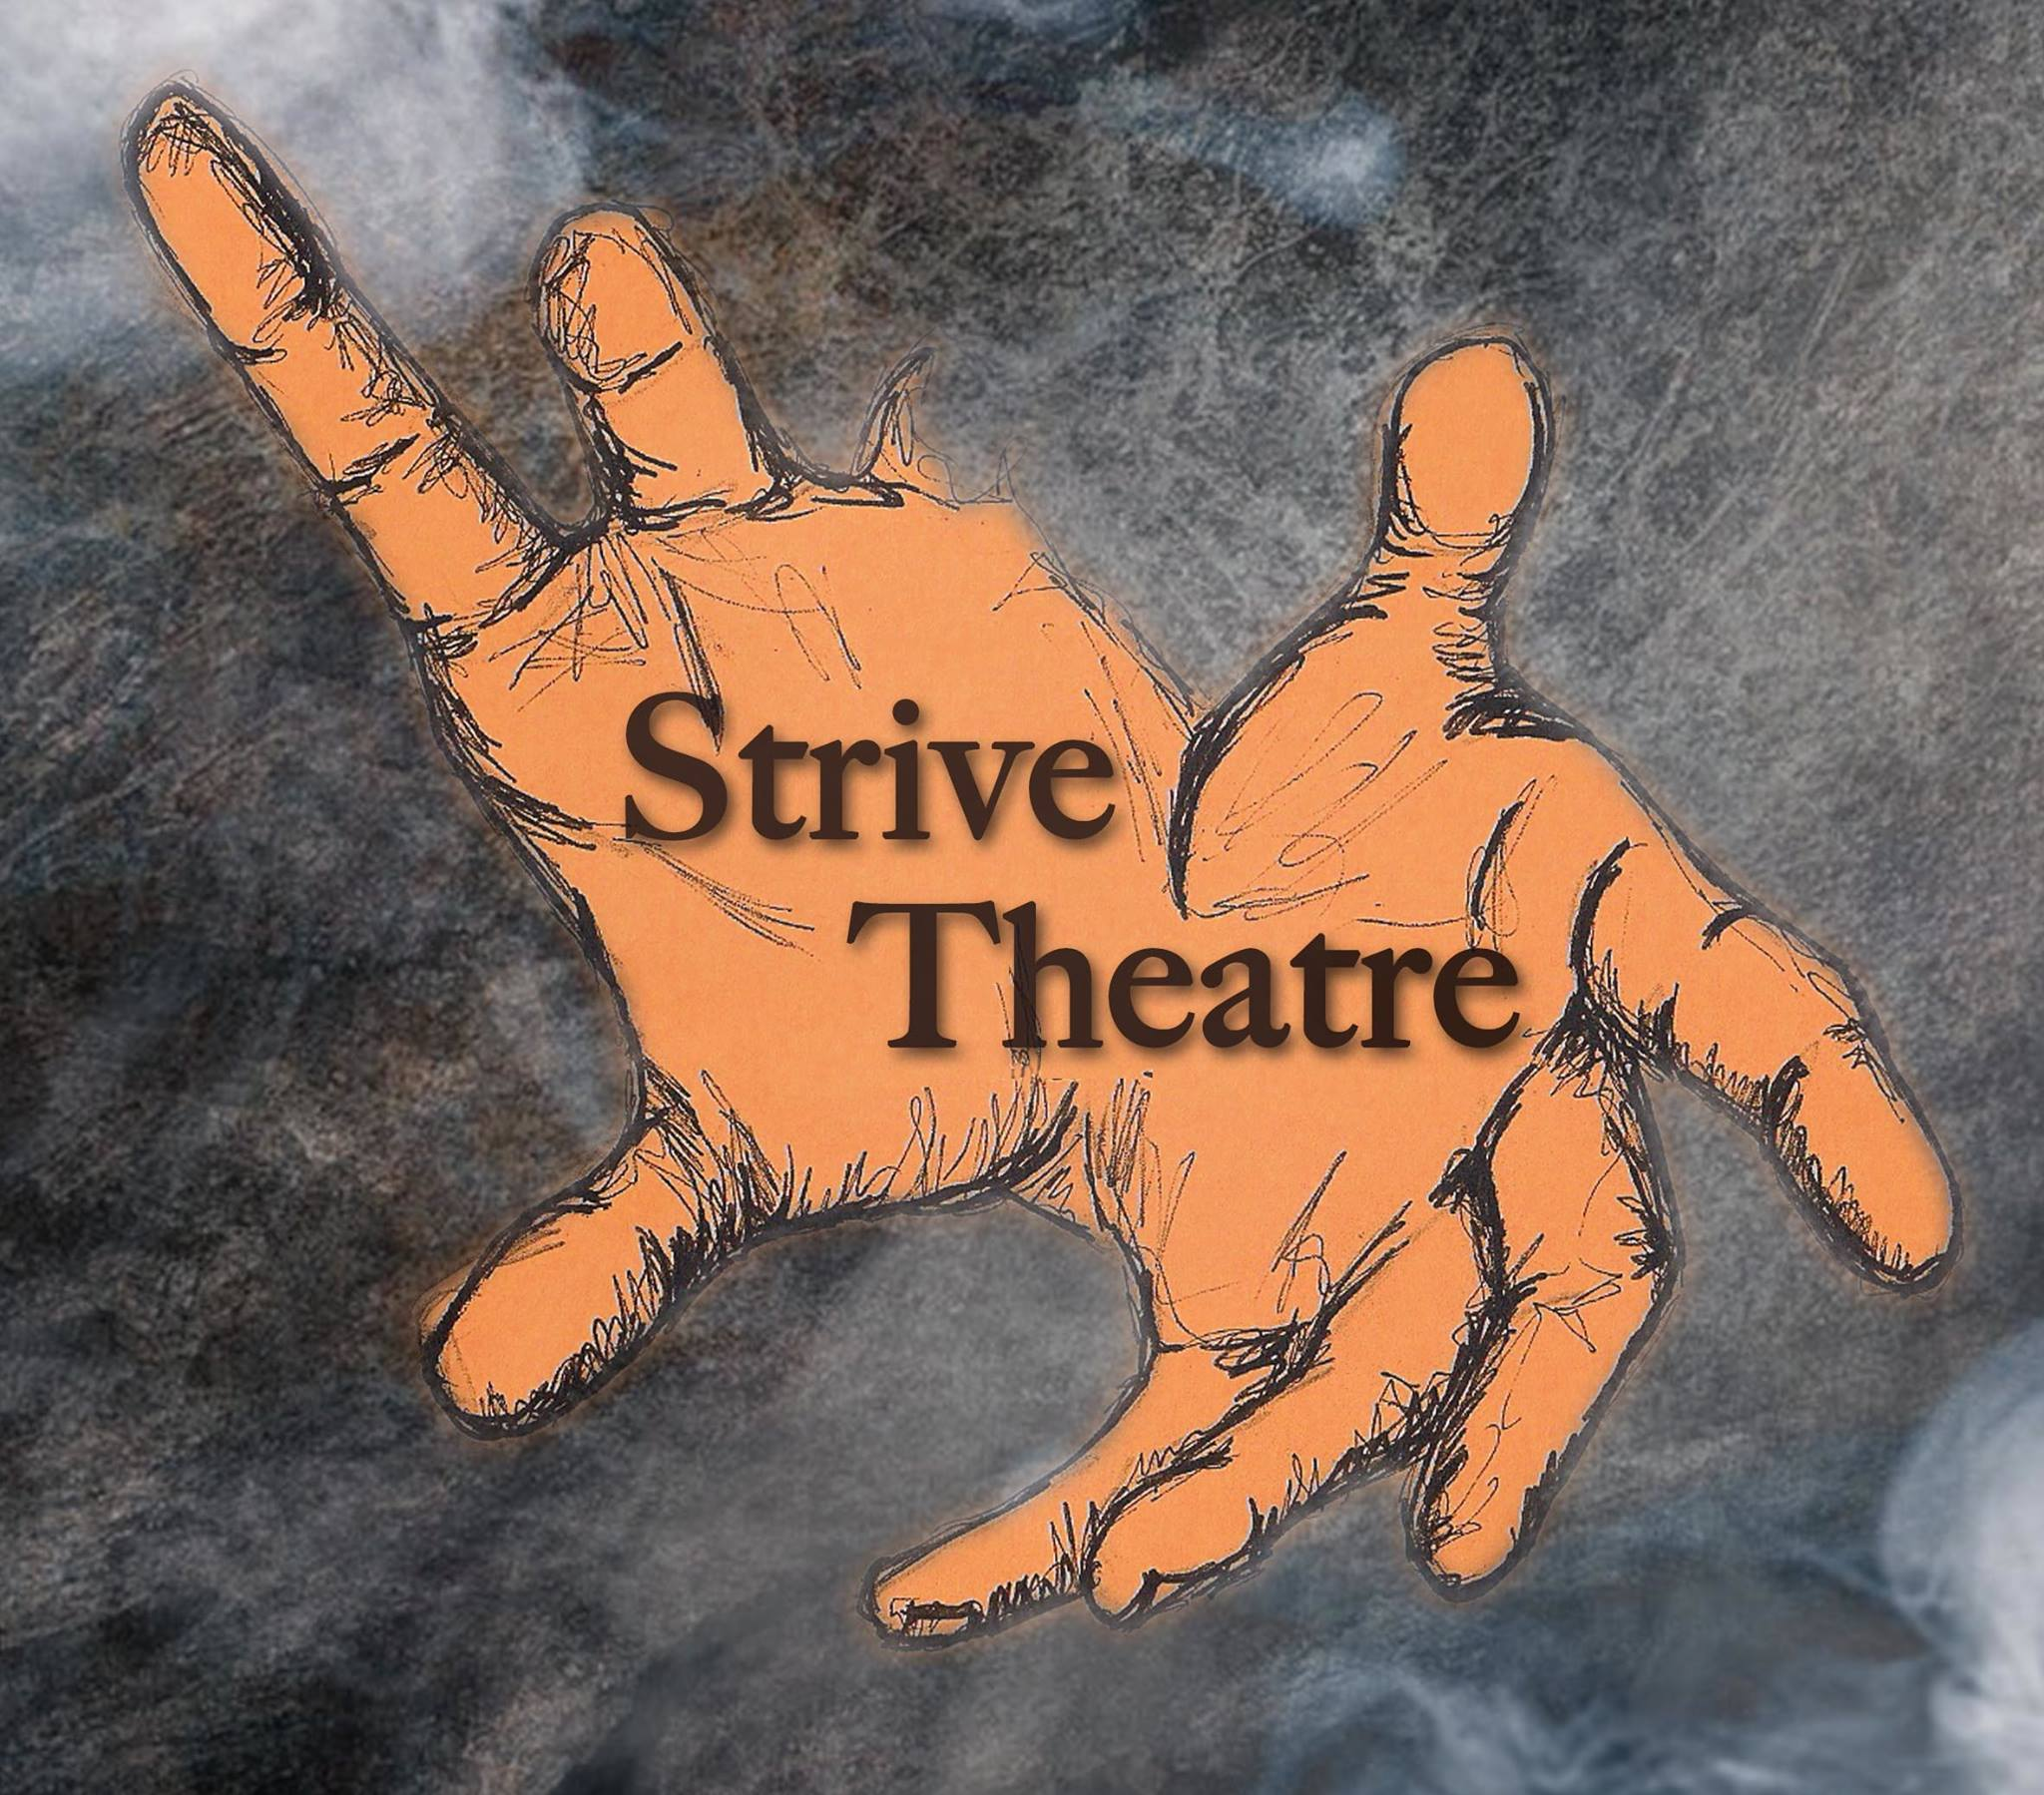 Strive TheatreCivic Trust House50 Popes QuayCork City. - strivetheatre12@gmail.com